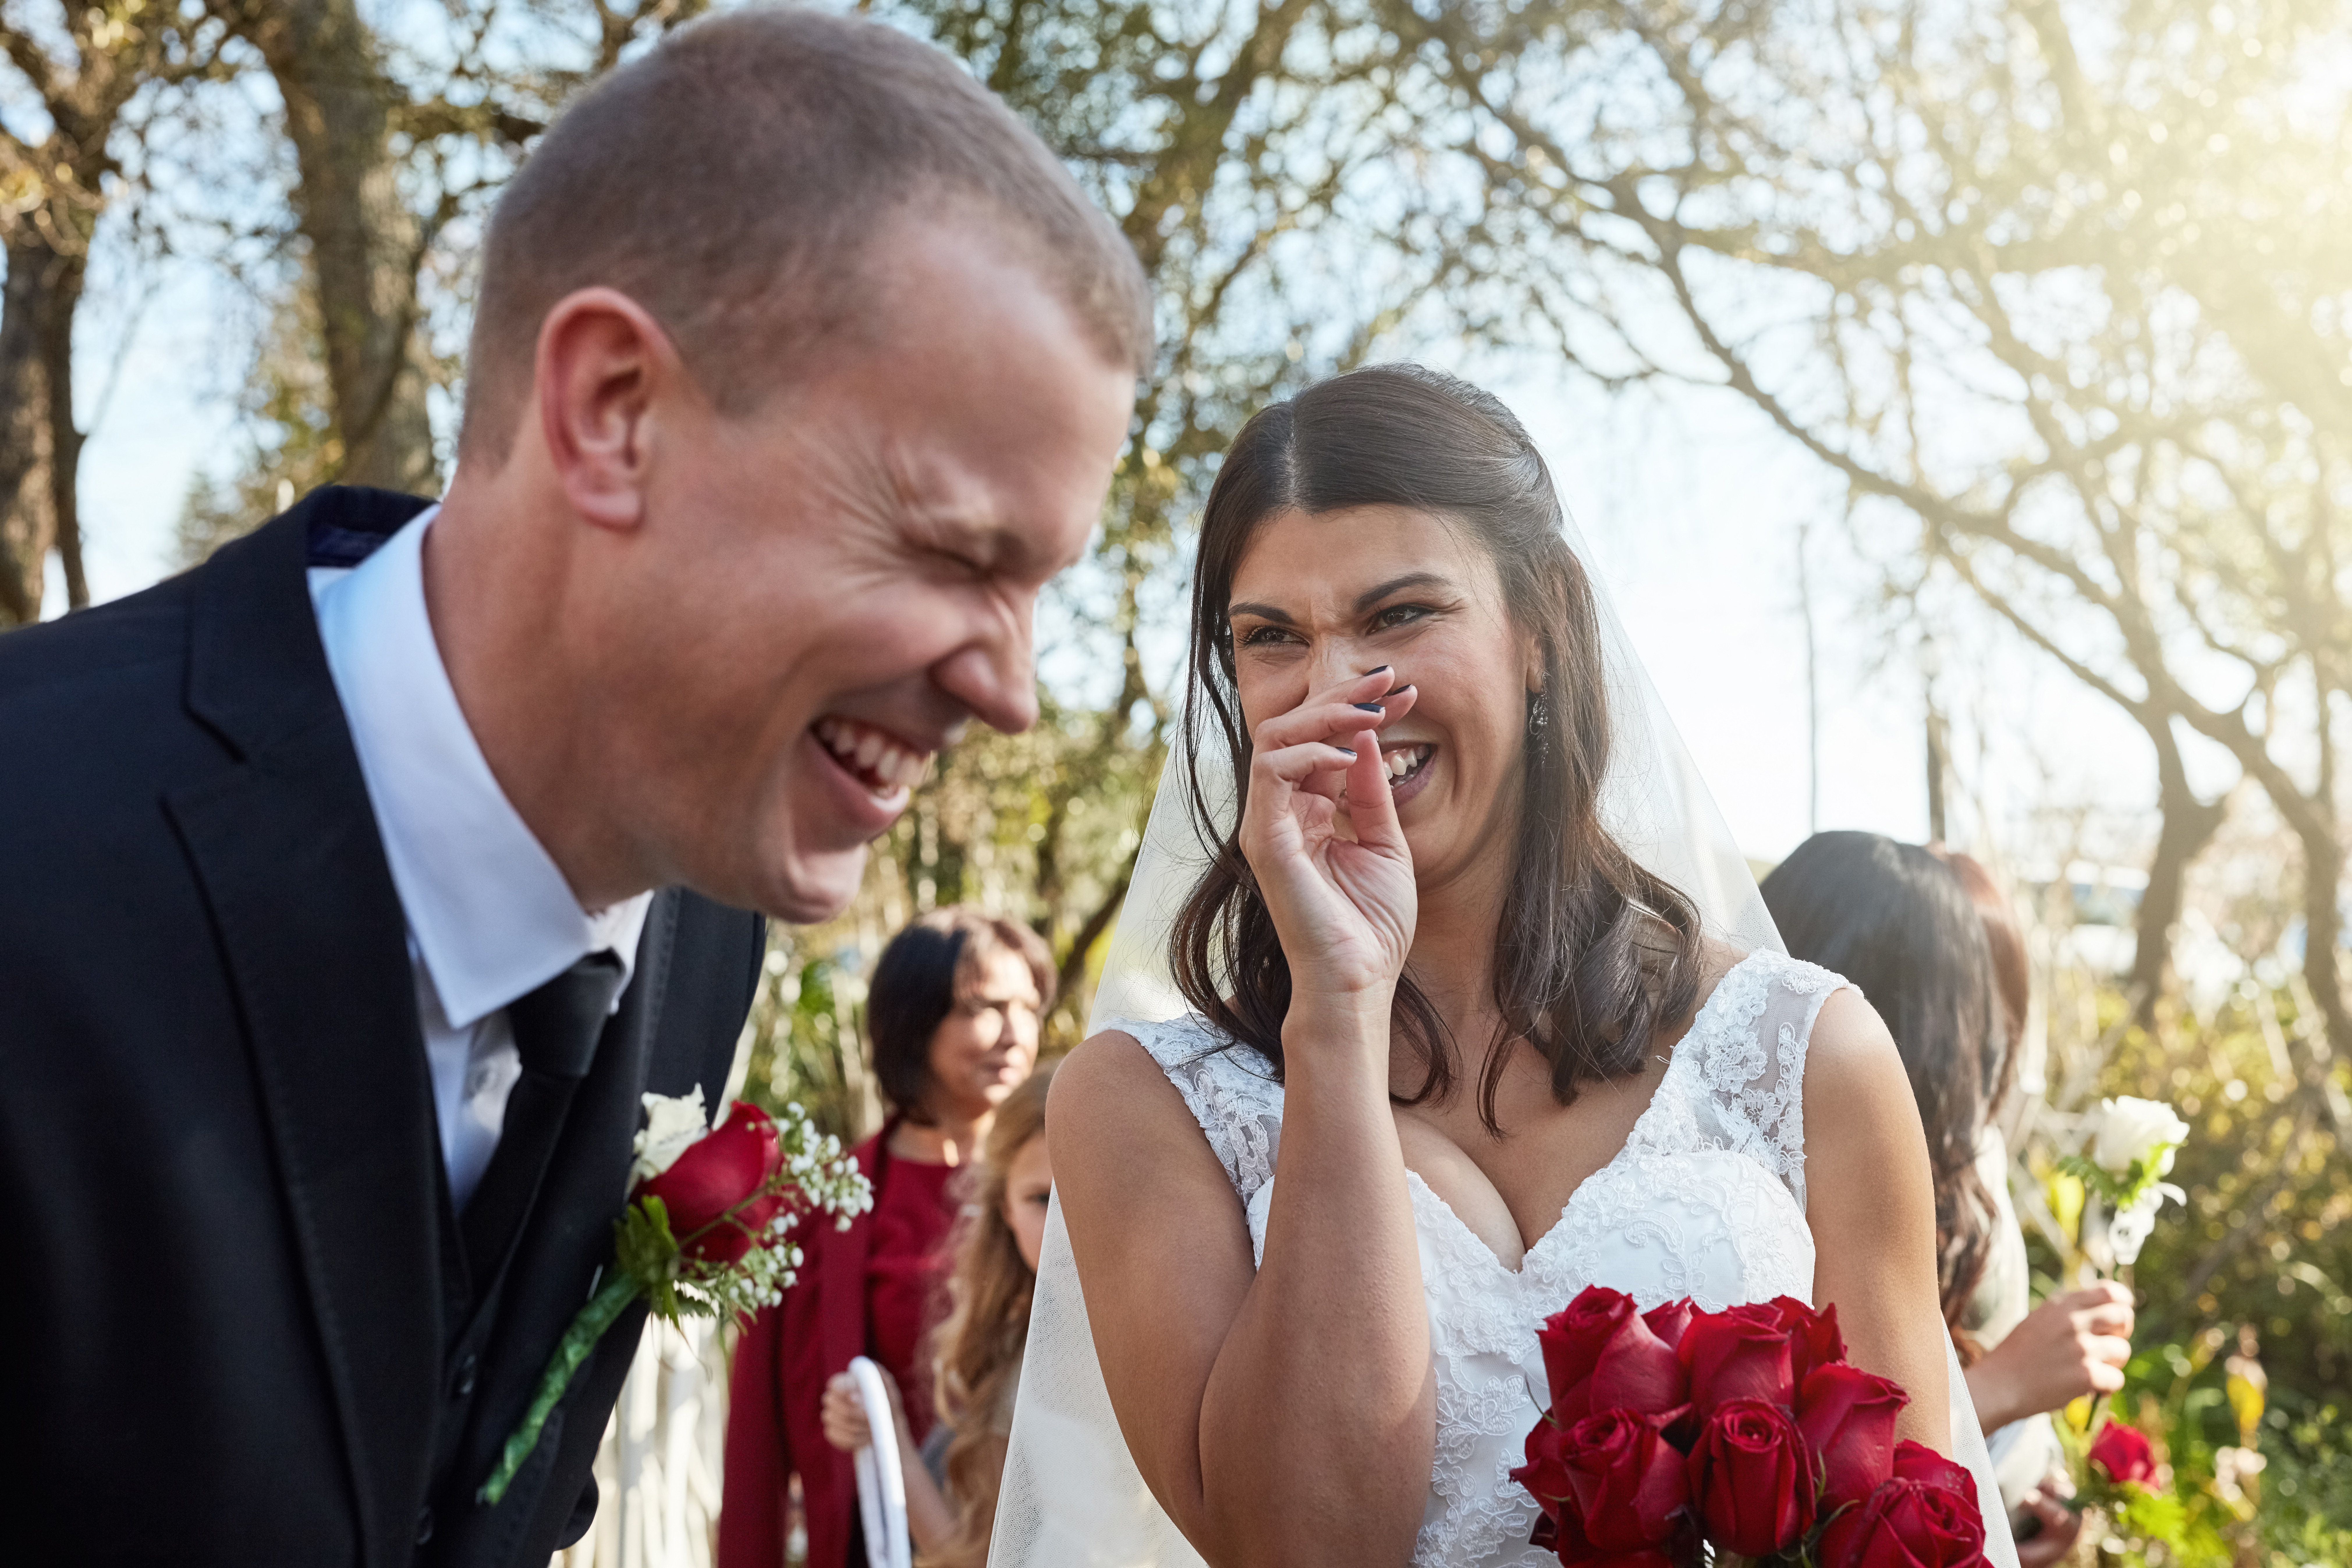 Sometimes the humor in couples' vows at wedding ceremonies is not exactly intentional.